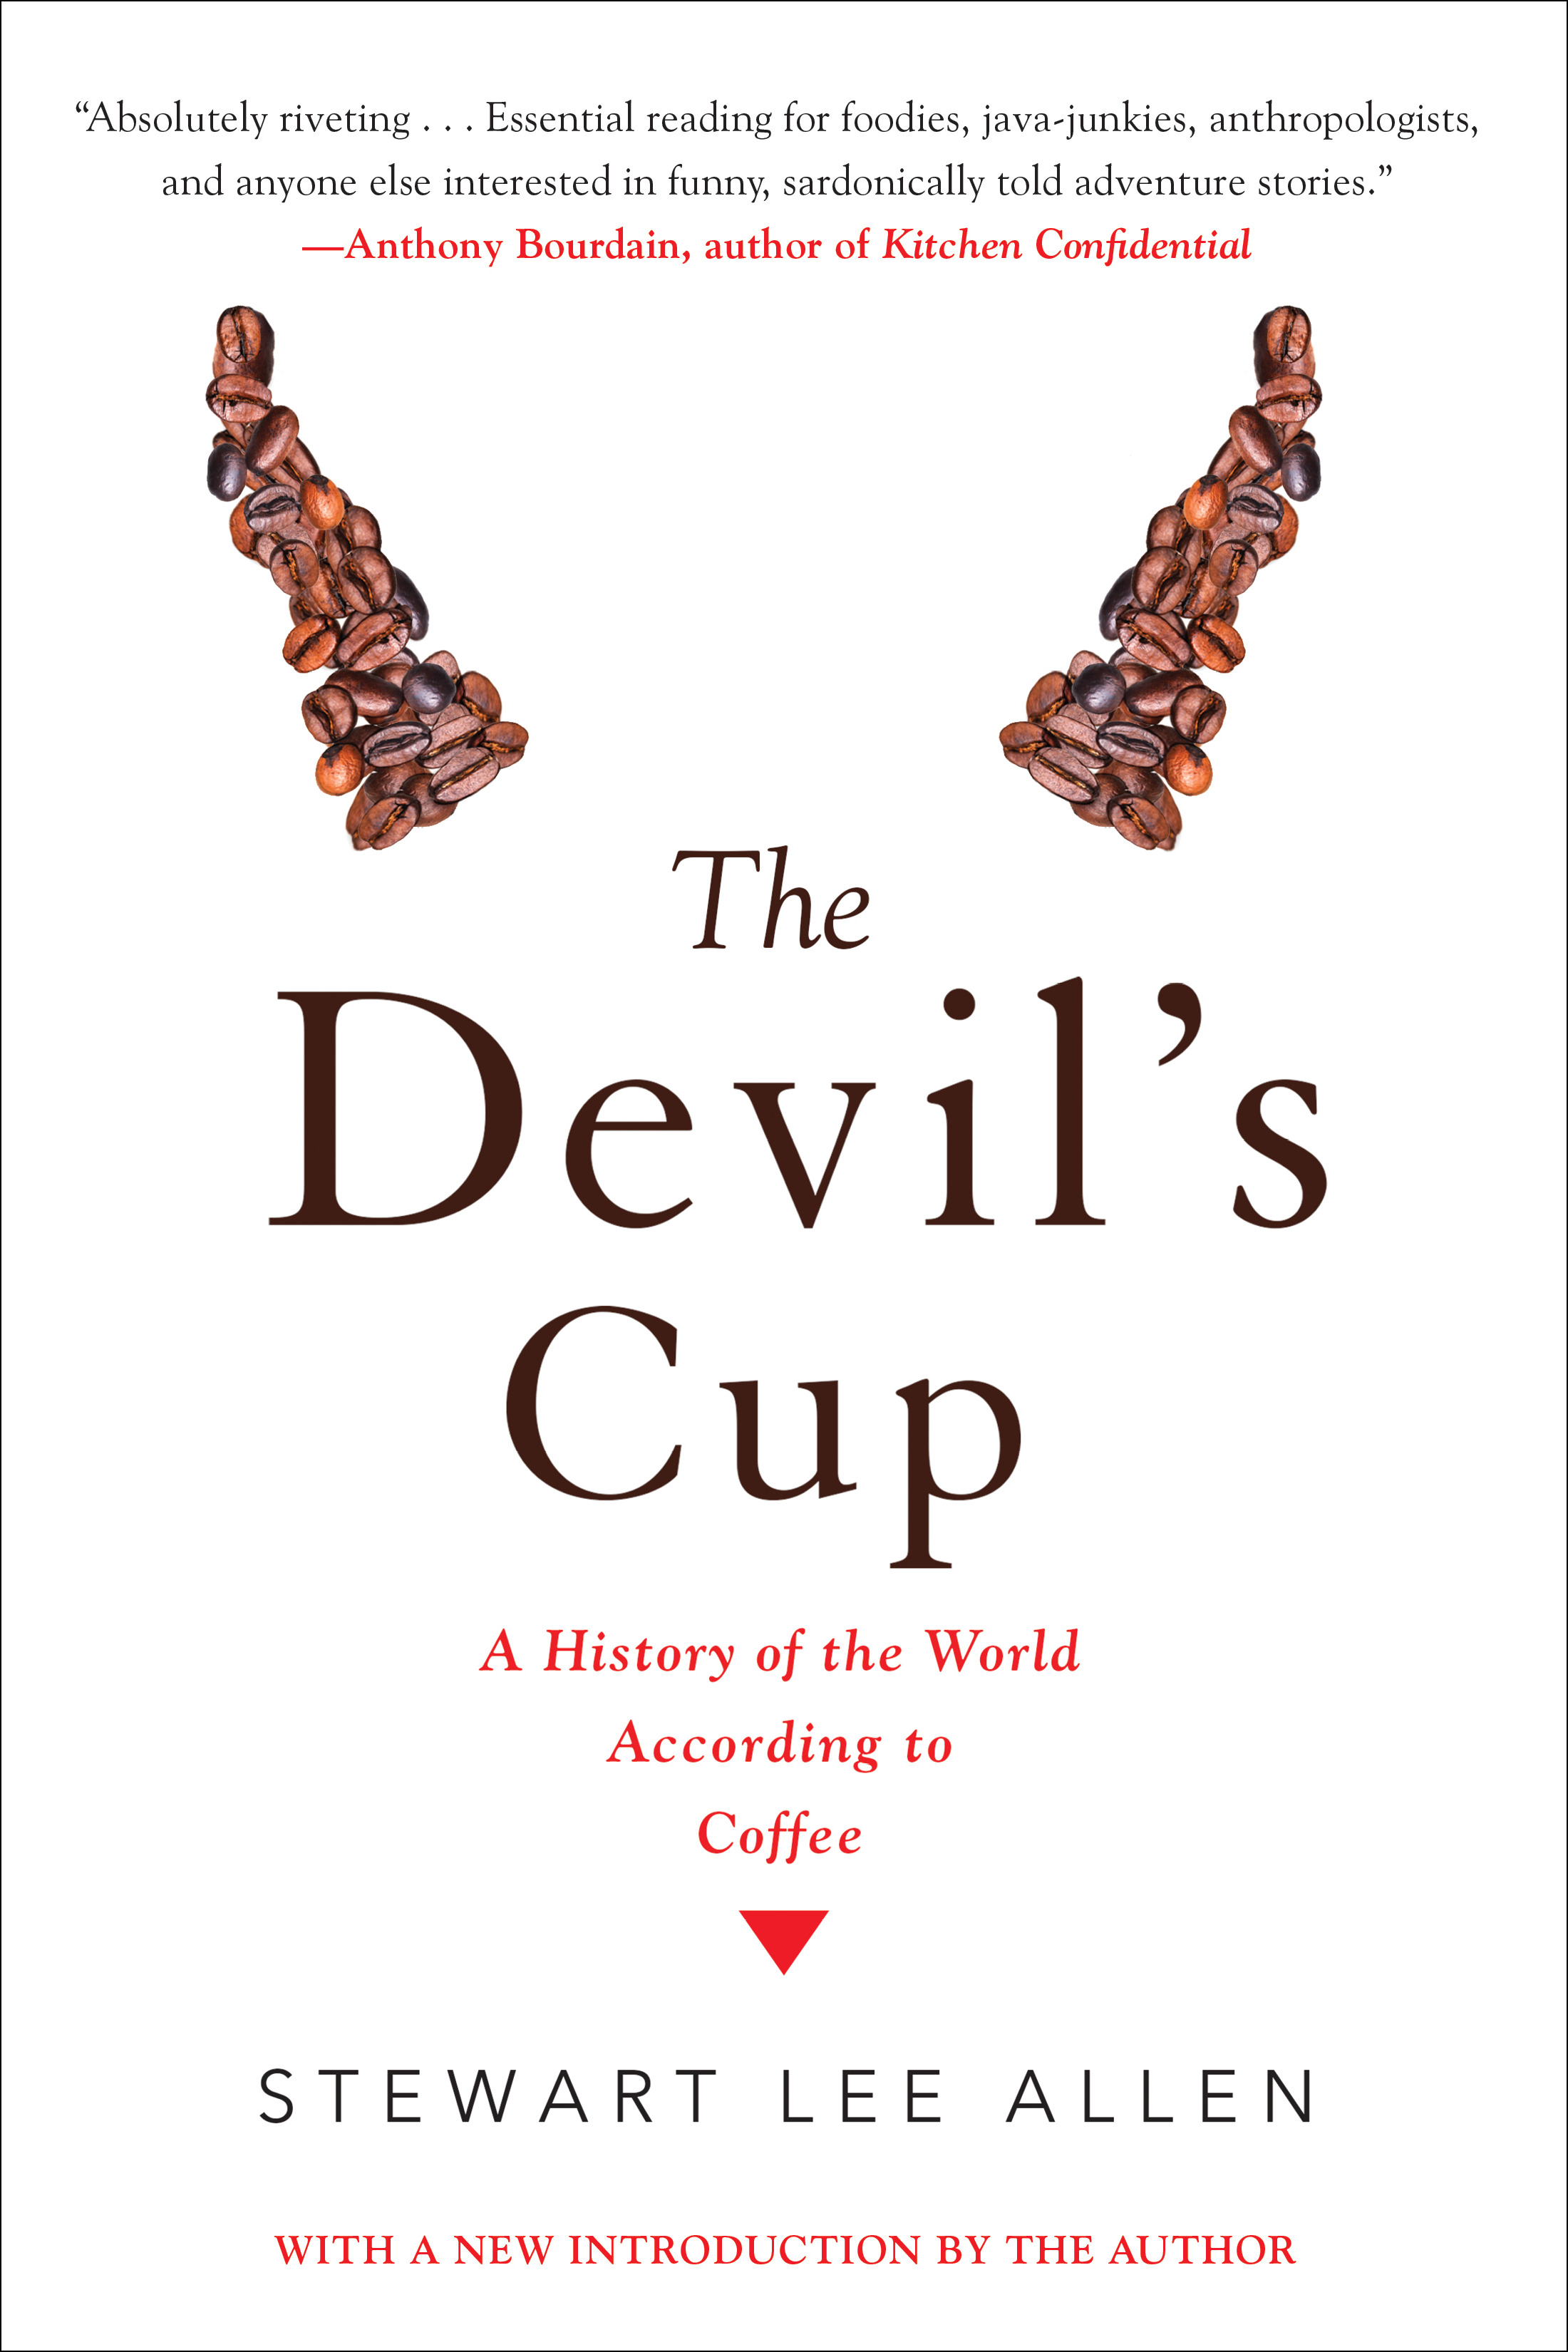 a history of the world according to coffee soho press